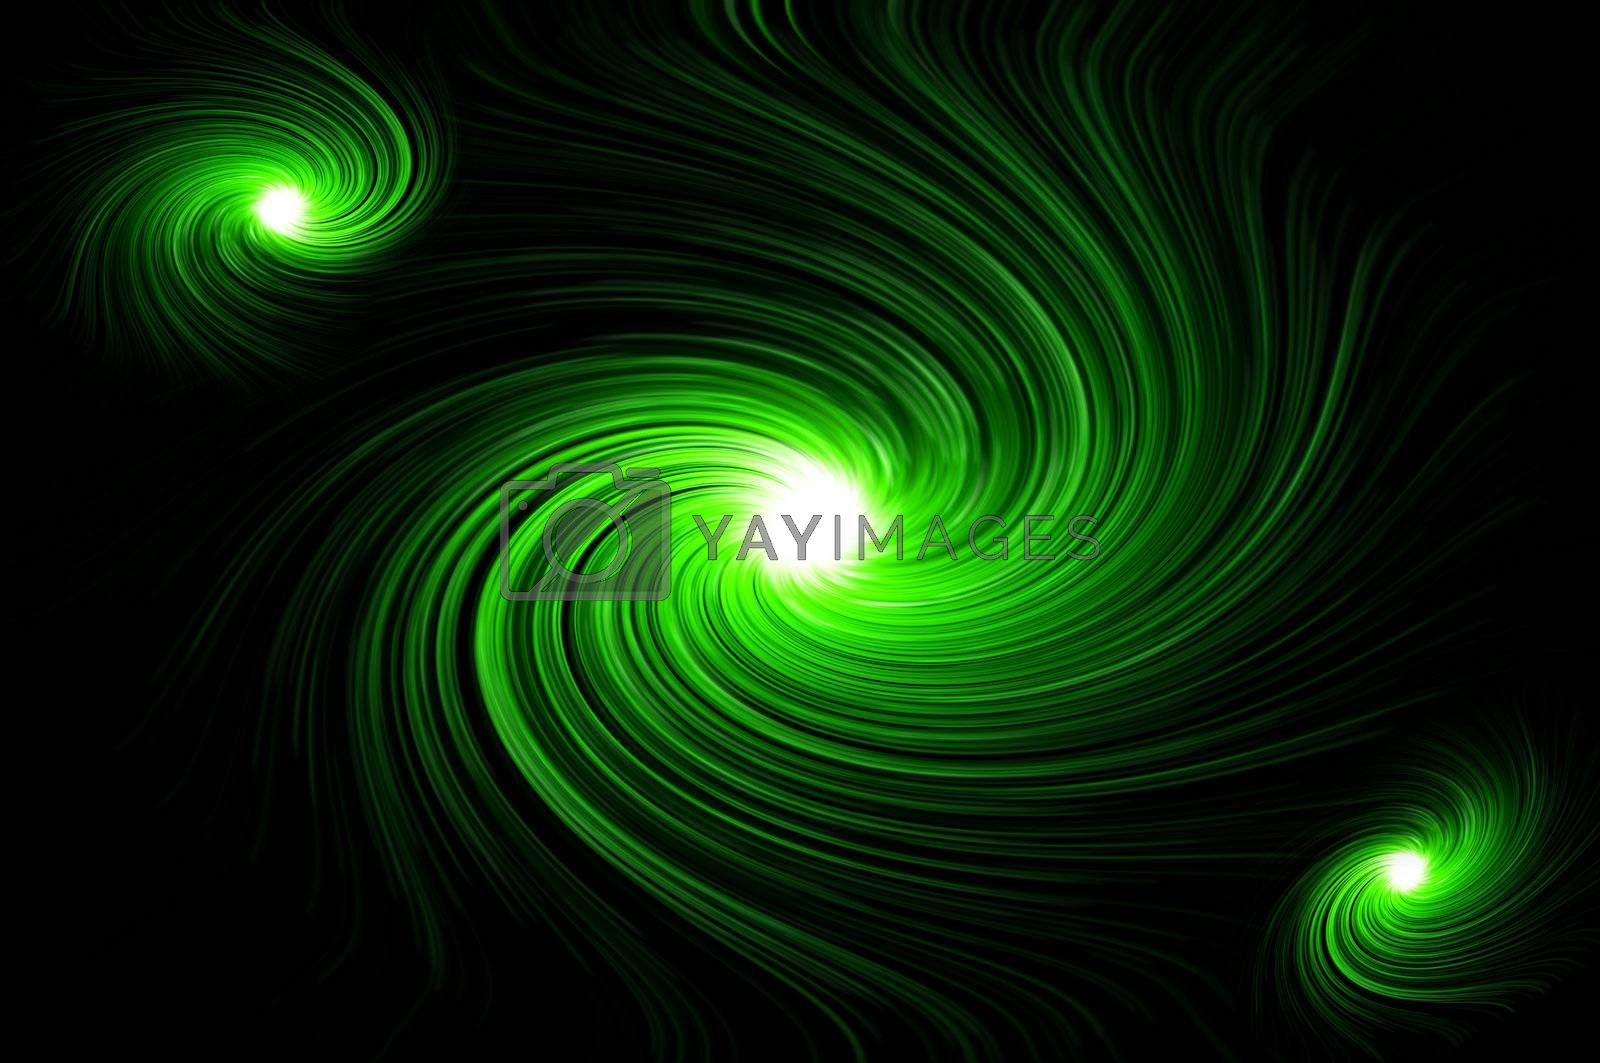 Abstract green swirling lights against black background.